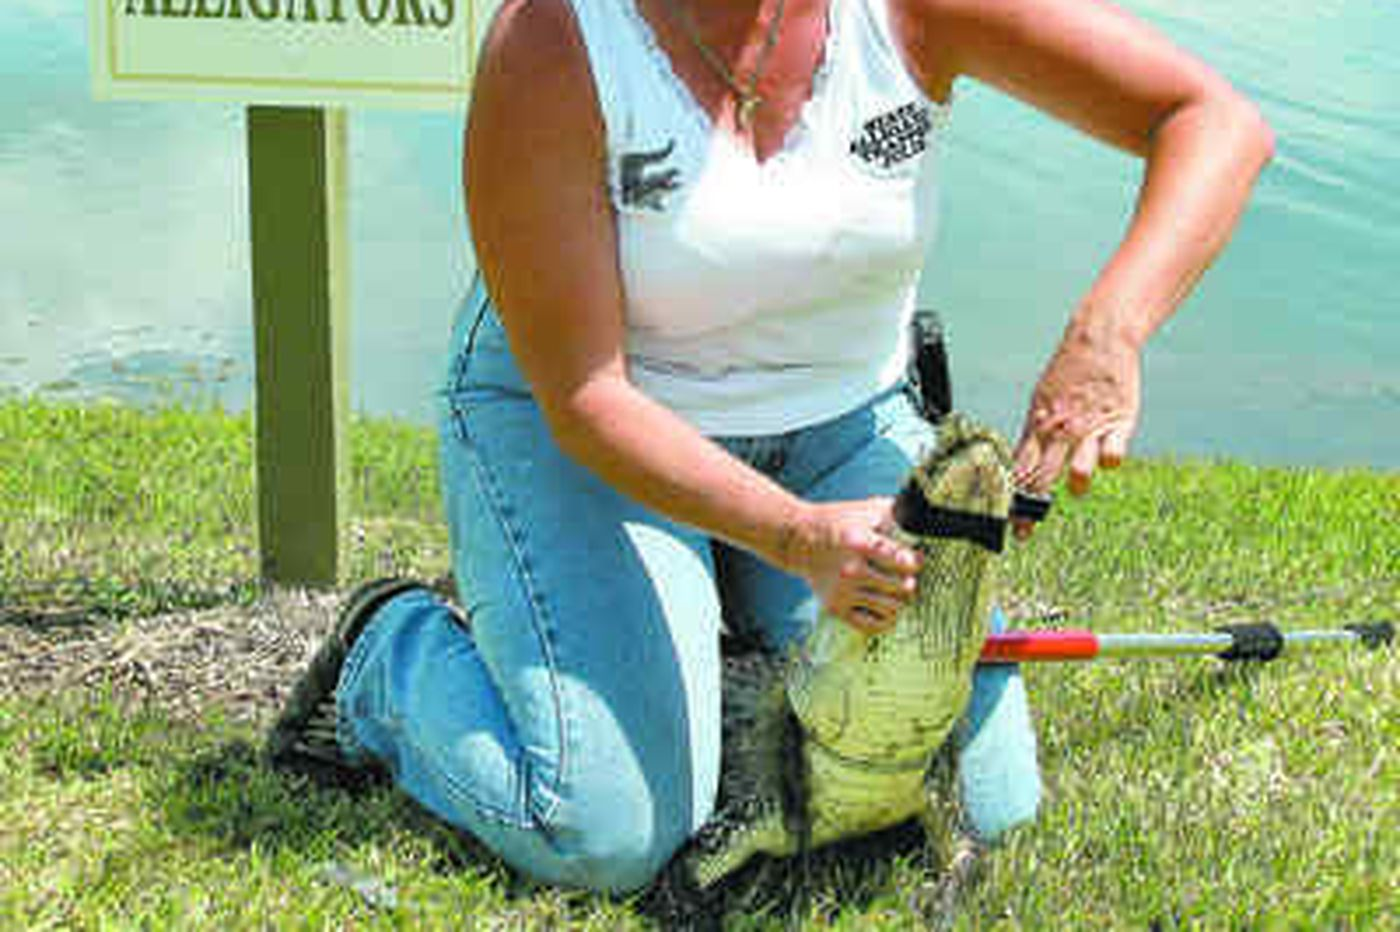 She's hot on the trail of nuisance gators in Florida